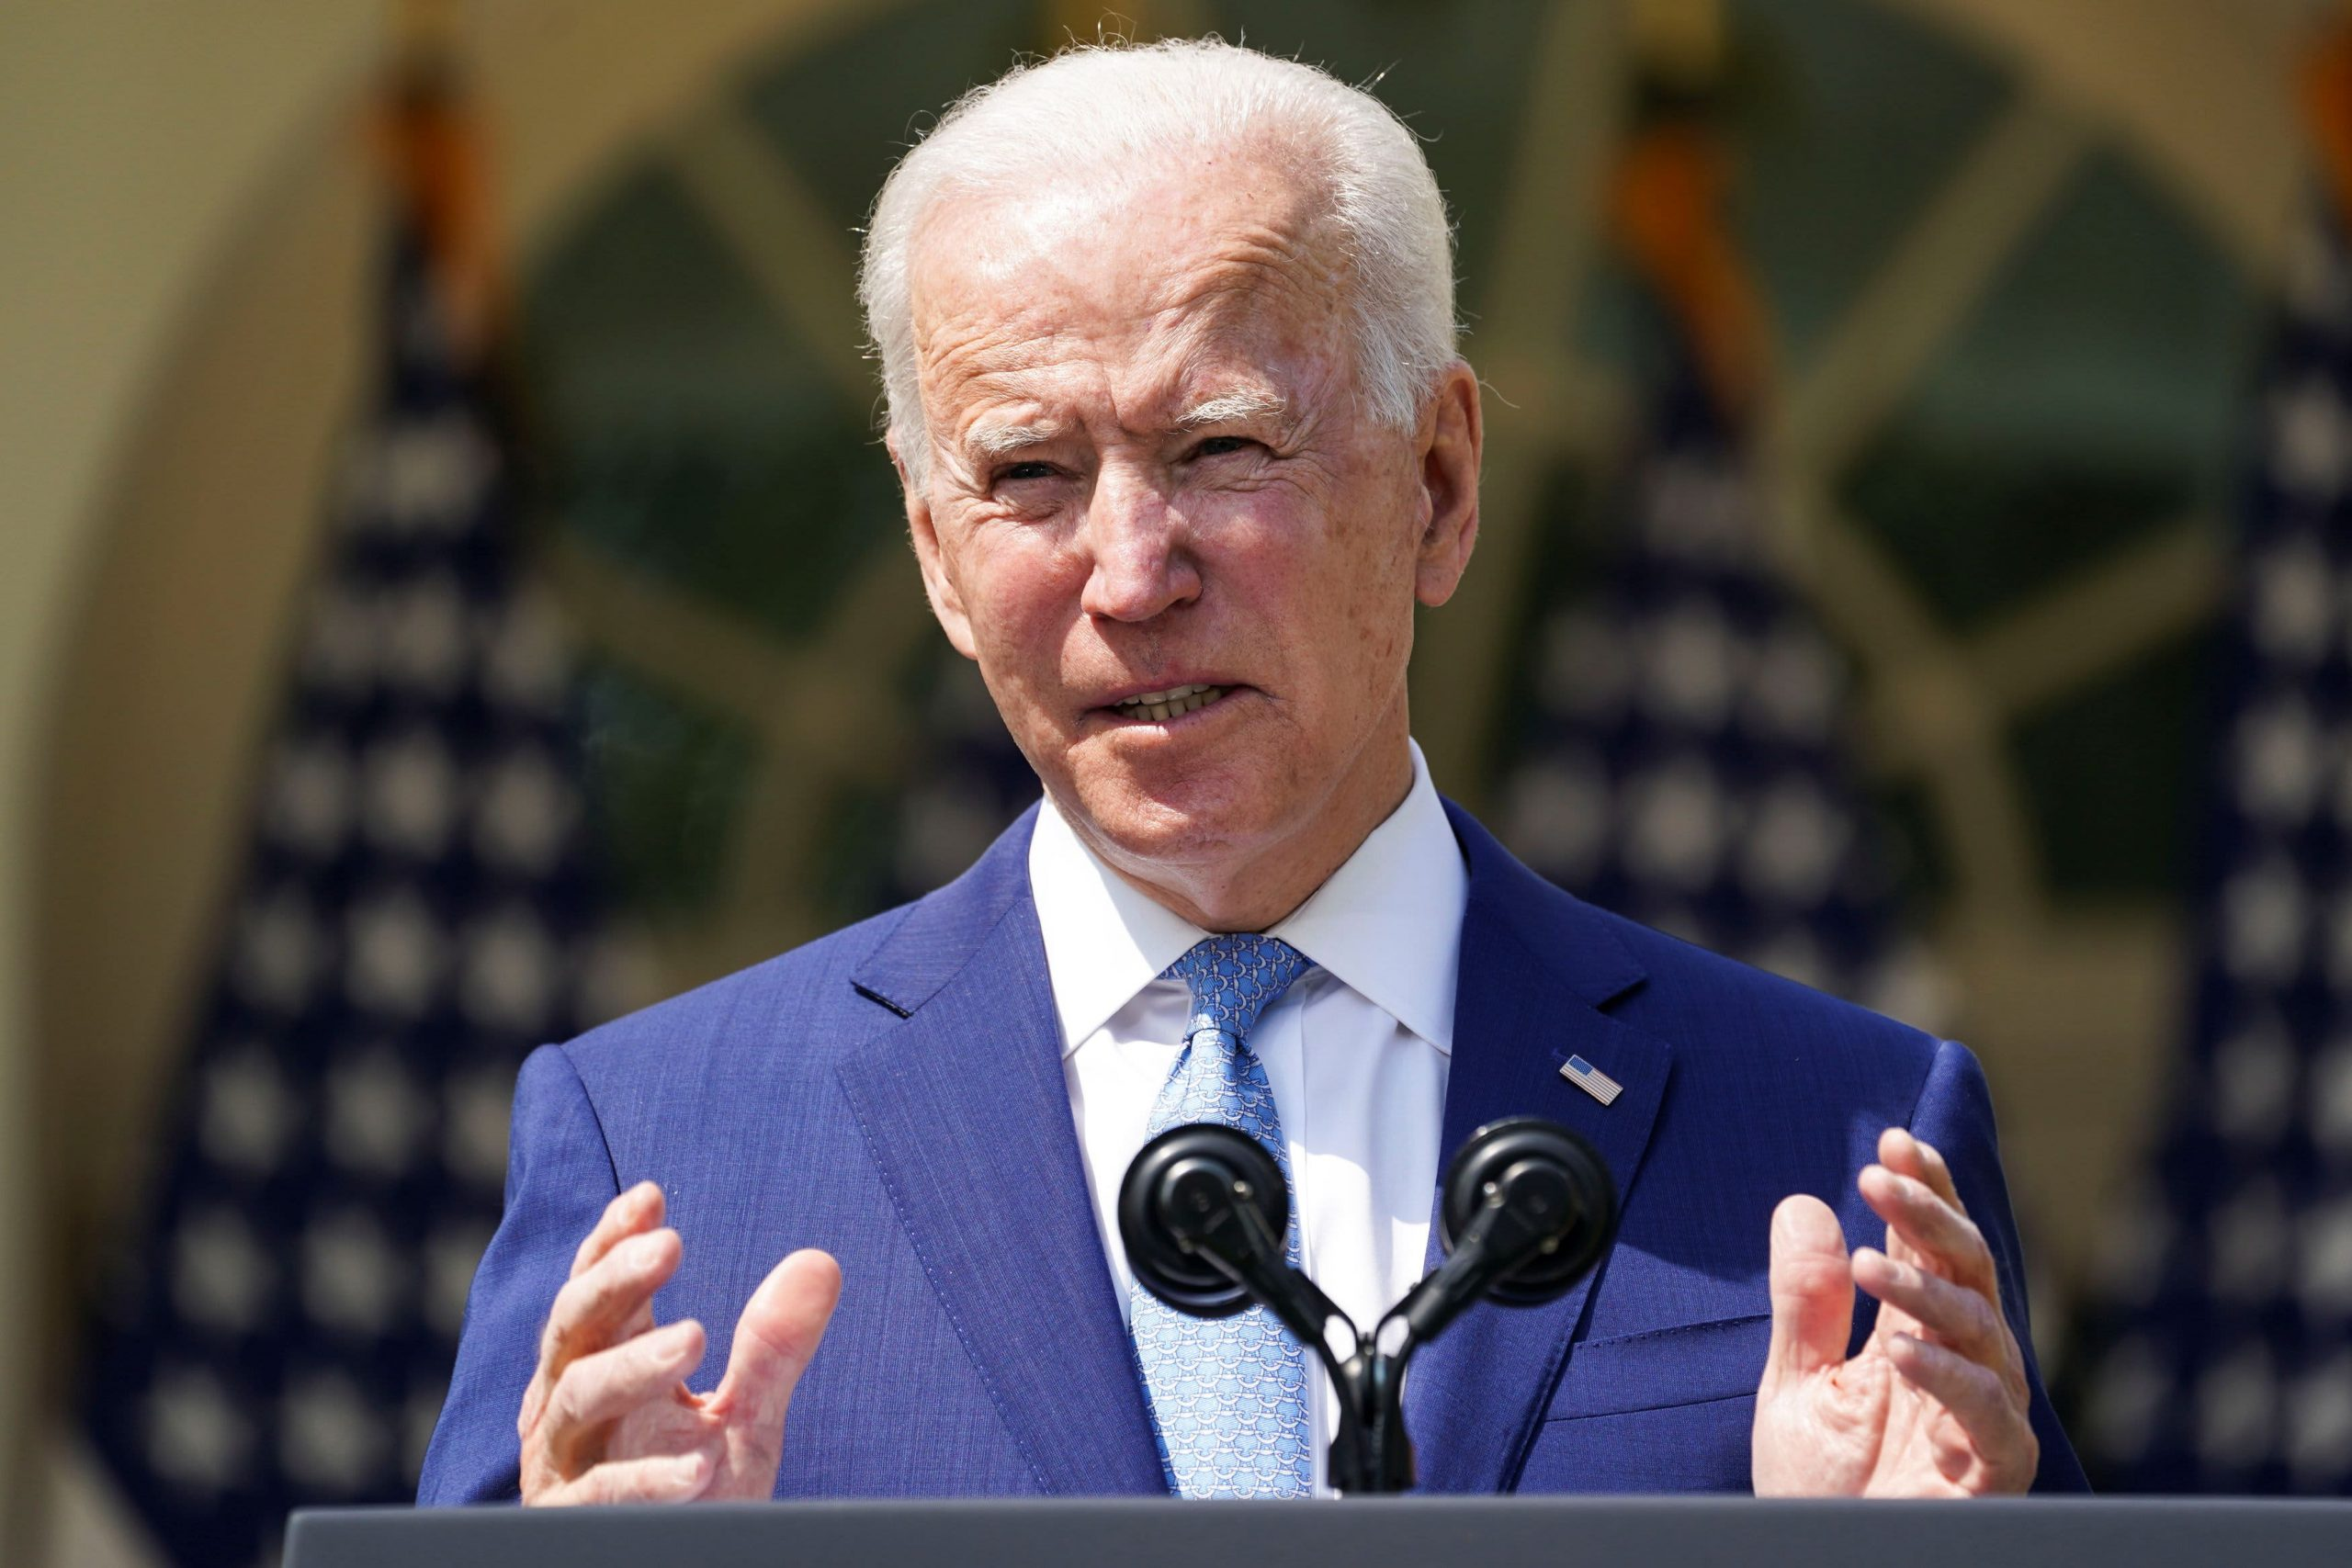 Biden says gun violence is an epidemic, calls for red-flag law